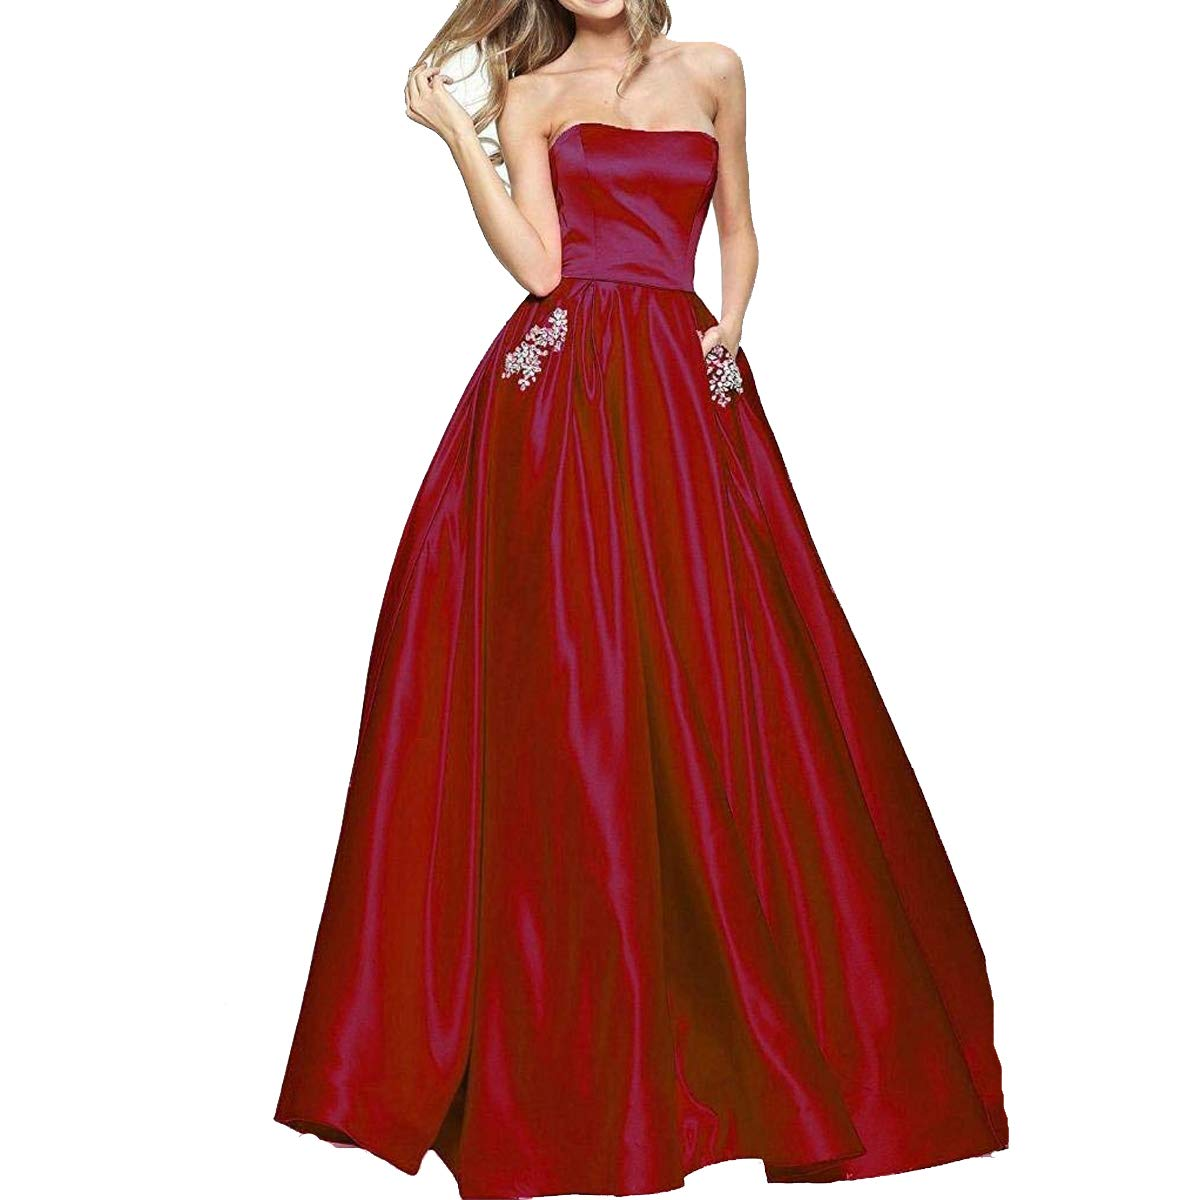 Burgundy TTYbridal Women's ALine Strapless Beaded Prom Dresses Long Satin Homecoming Party Gown with Pockets